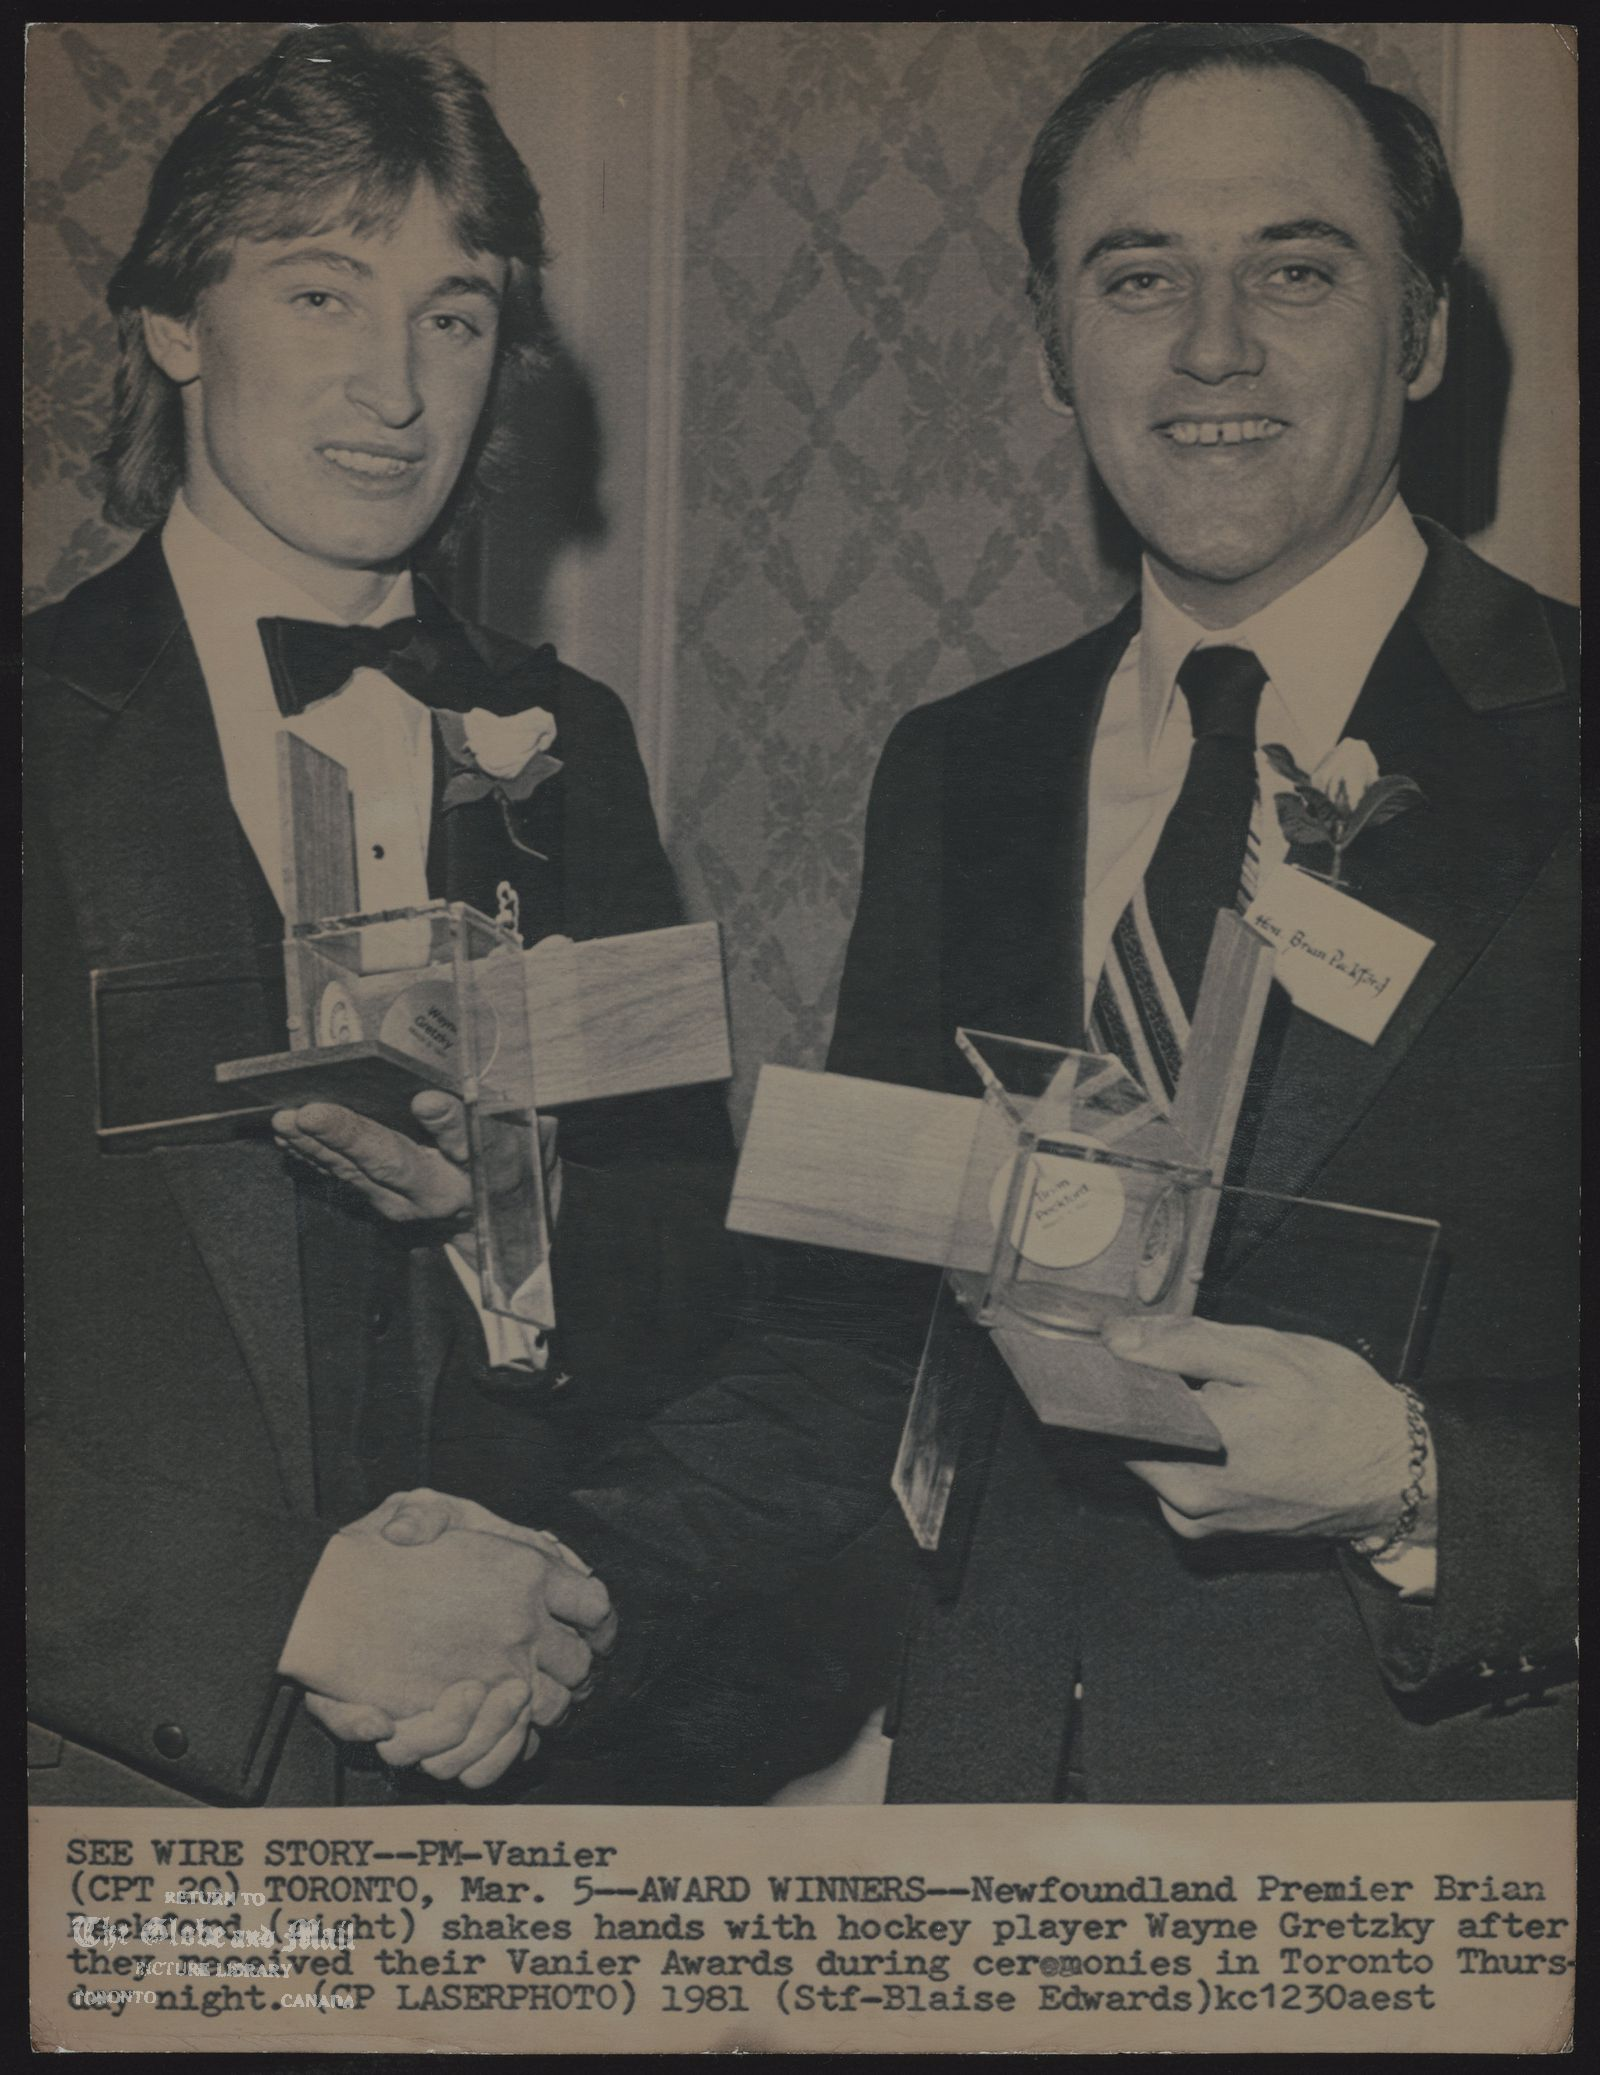 Wayne GRETZKY Hockey player SEE WIRE STORY--PM--Vanier (CPT 20) TORONTO, Mar. 5--AWARD WINNERS--Newfoundland Premier Brian Peckford (right) shakes hands with hockey player Wayne Gretzky after they received their Vanier Awards during ceremonies in Toronto Thursday night. (CP Laserphoto) 1981 (Stf-Blaise Edwards) kc123aest